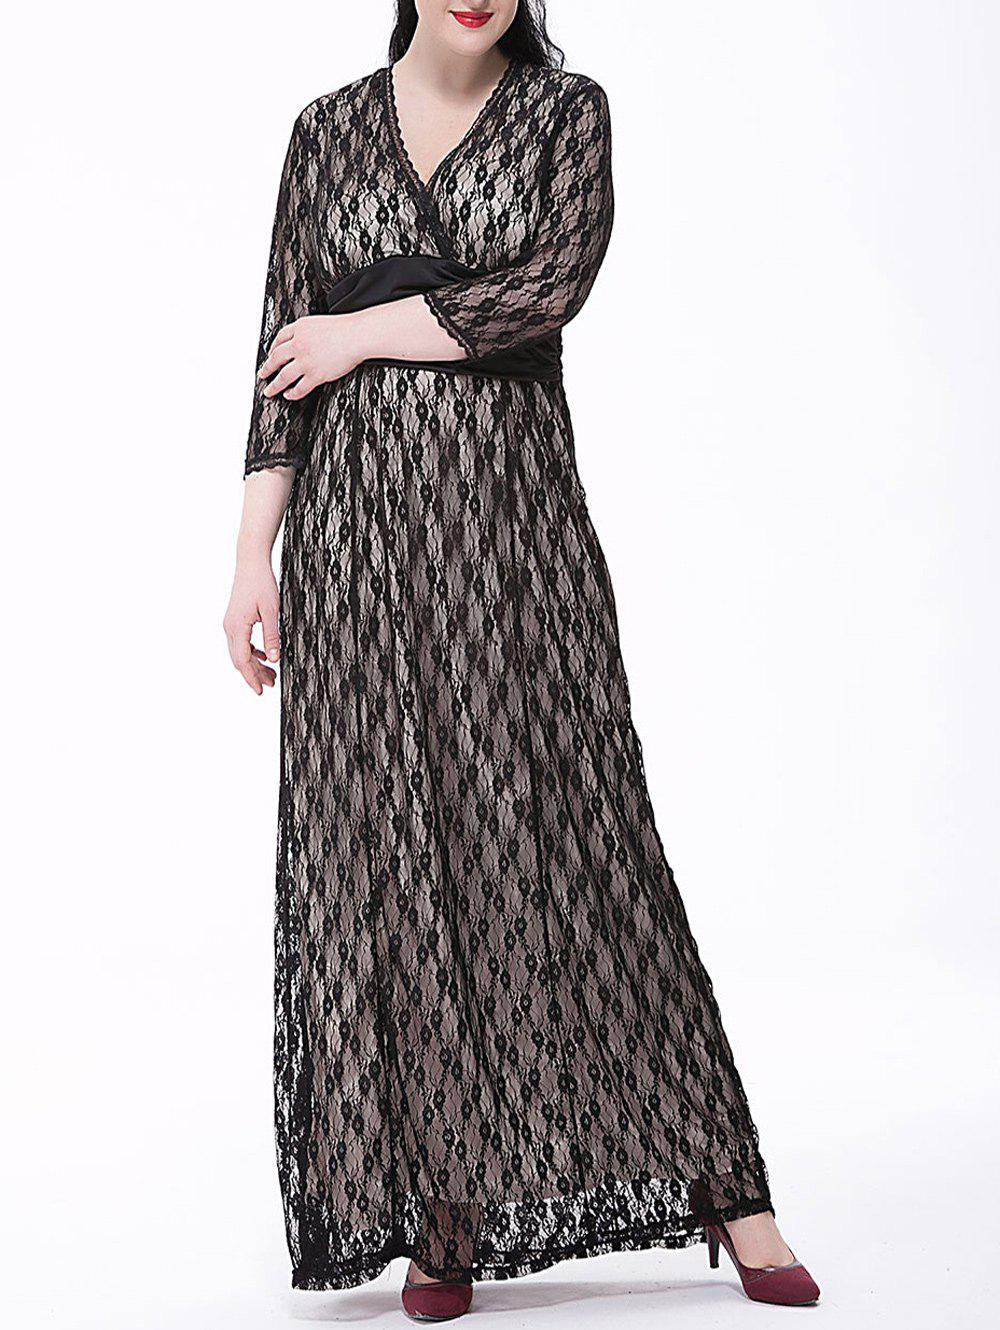 Long Formal Plus Size Evening Dress with Sleeves plus size long surplice formal dress with sleeves